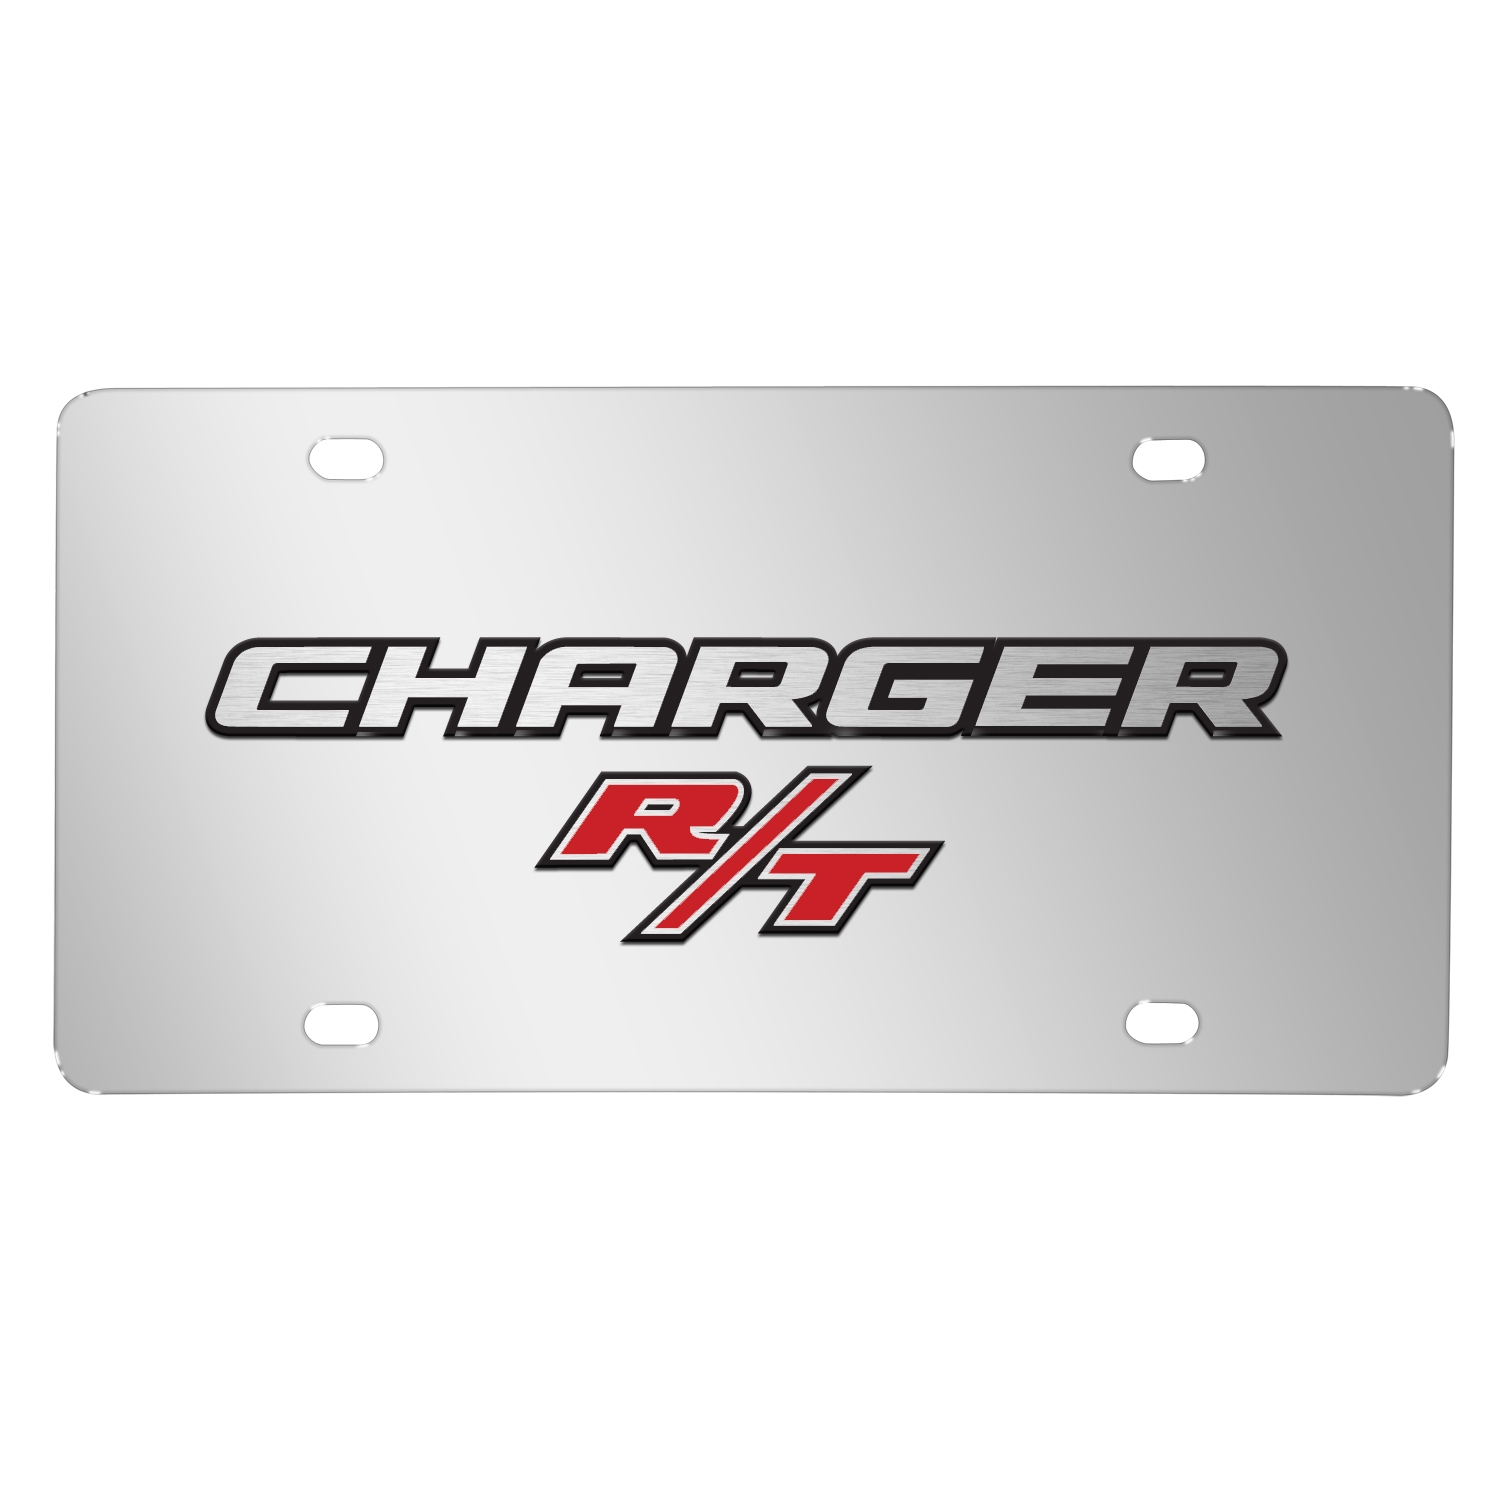 Dodge Charger R/T 3D Logo on Chrome Stainless Steel License Plate